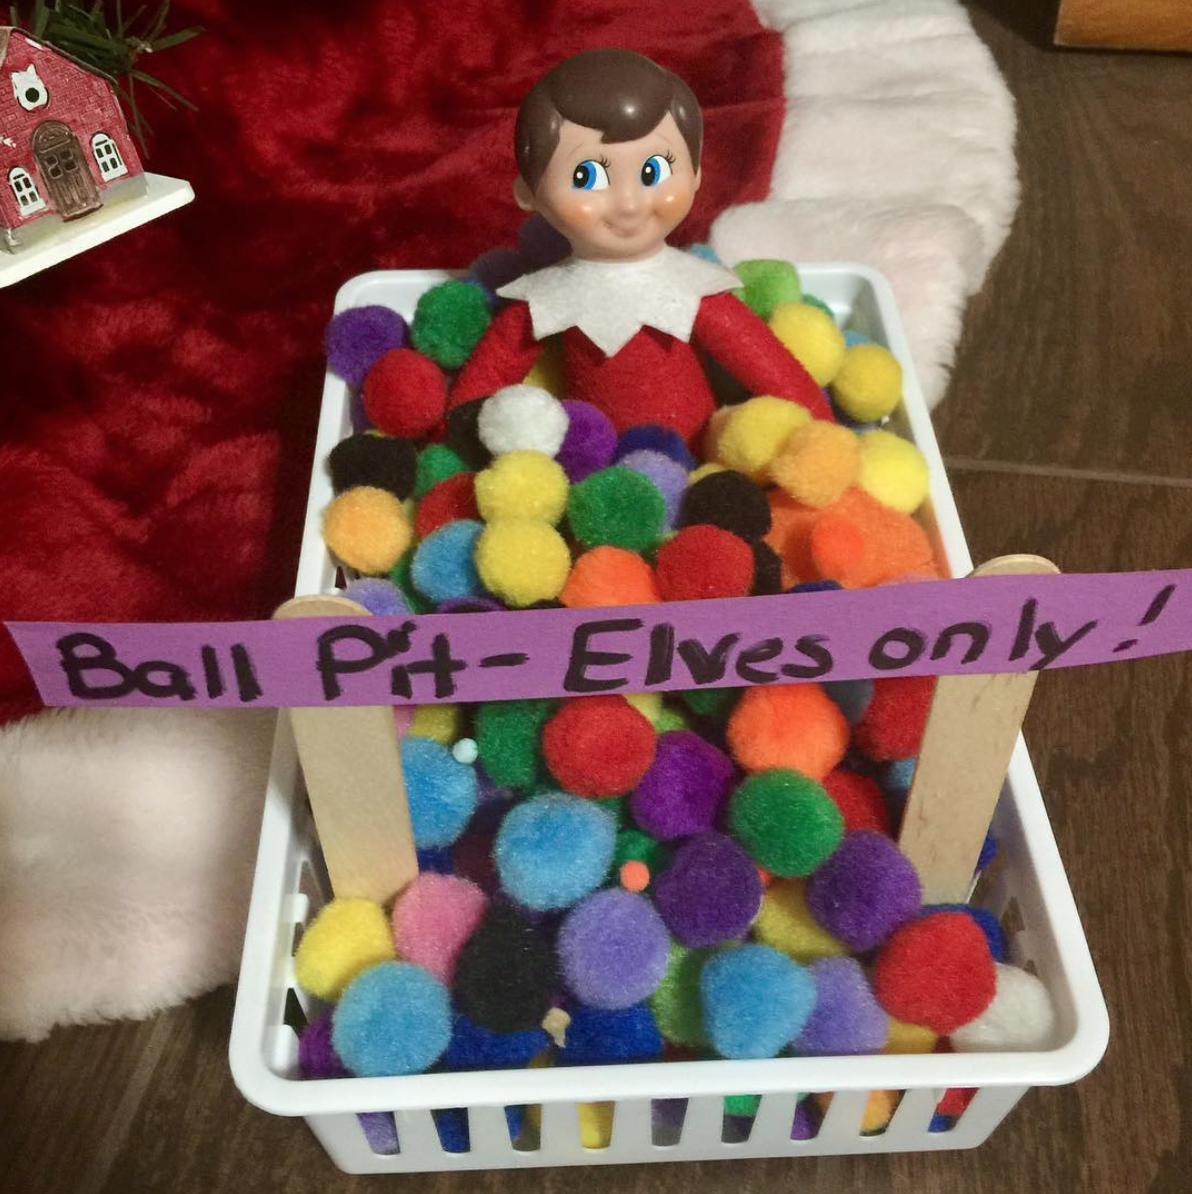 Funny elf on the shelf ideas the best weuve seen ball pits